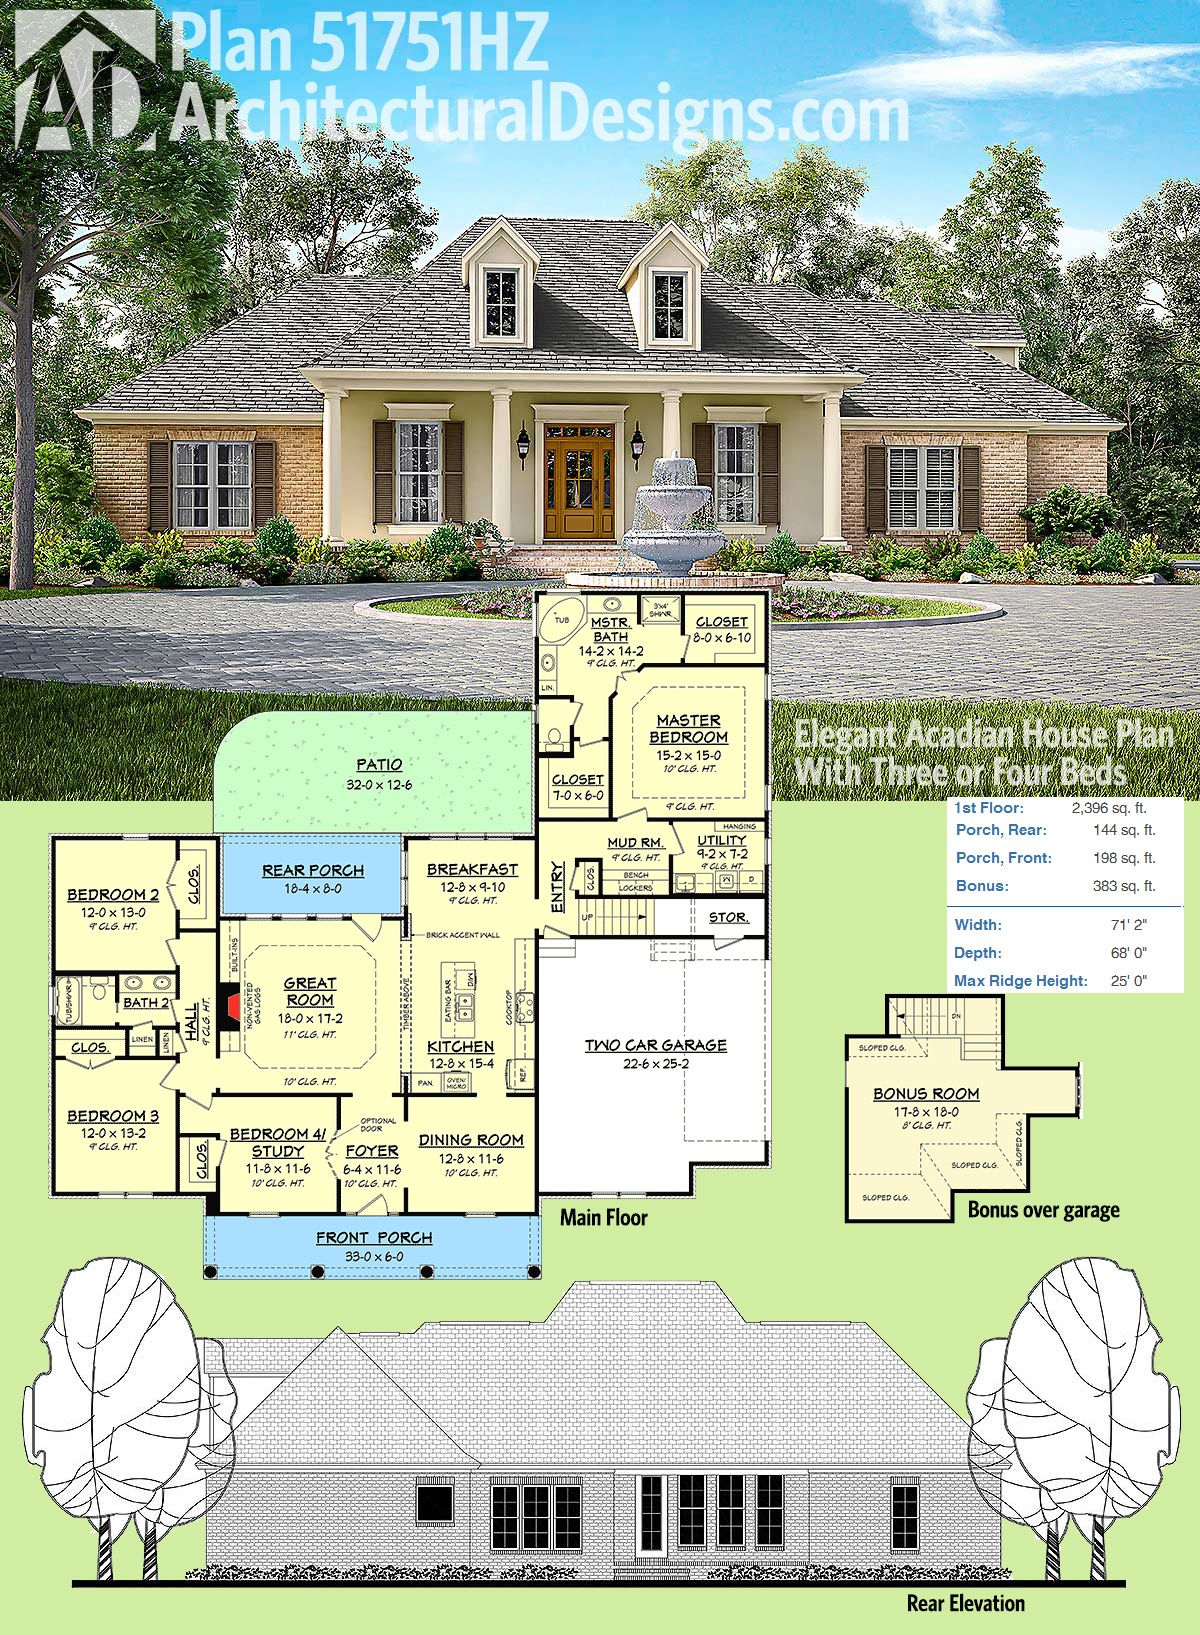 Architectural designs acadian style house plan 51751hz has for Symmetrical house plans